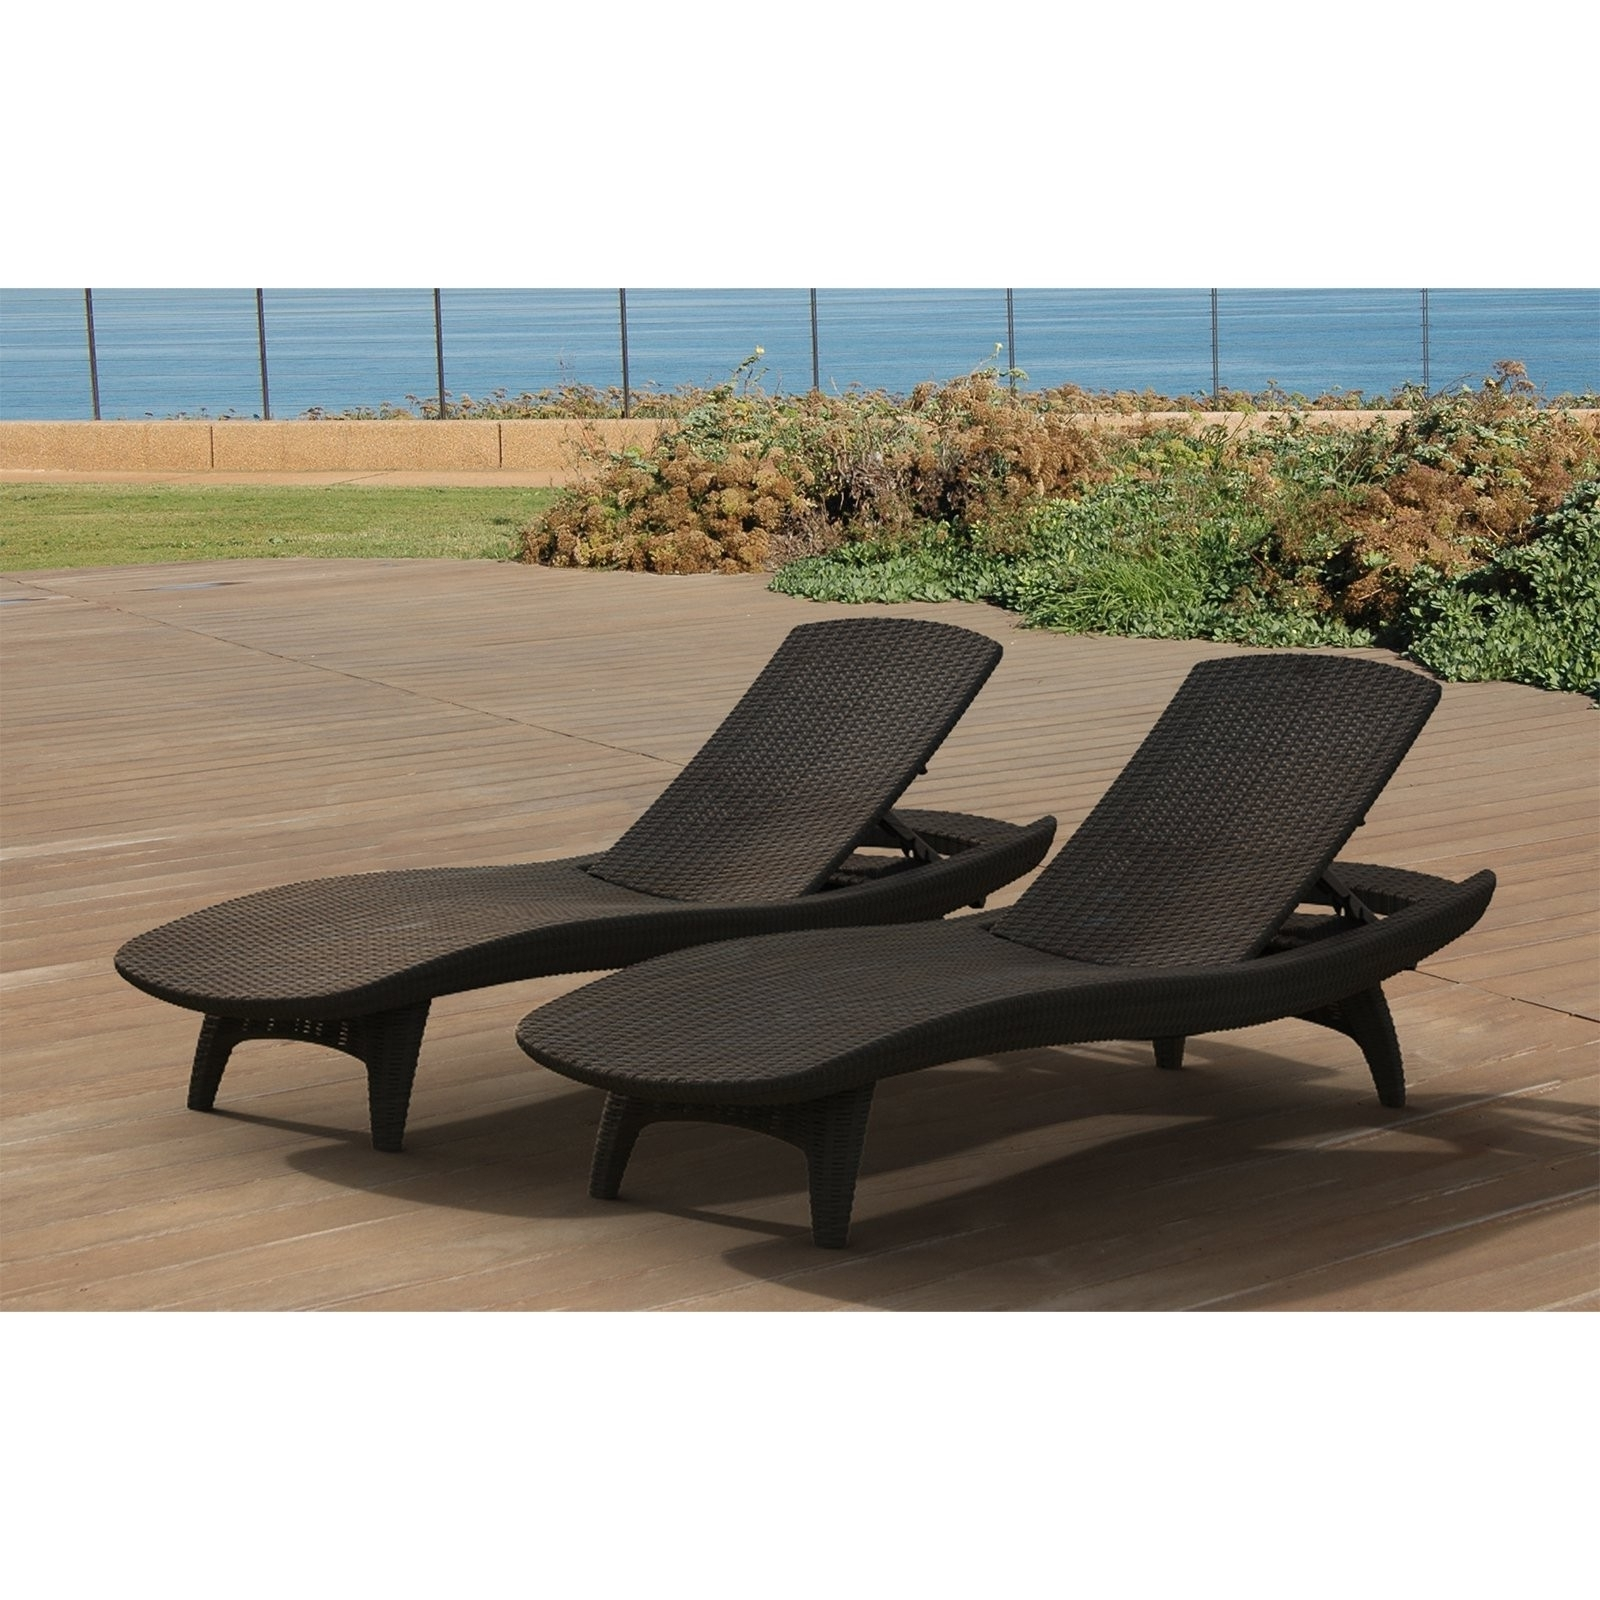 Chaise Lounge Chairs Under $200 With Most Popular Furniture : Leather Chaise Lounge Nz Chaise Lounge Jysk Office (View 10 of 15)